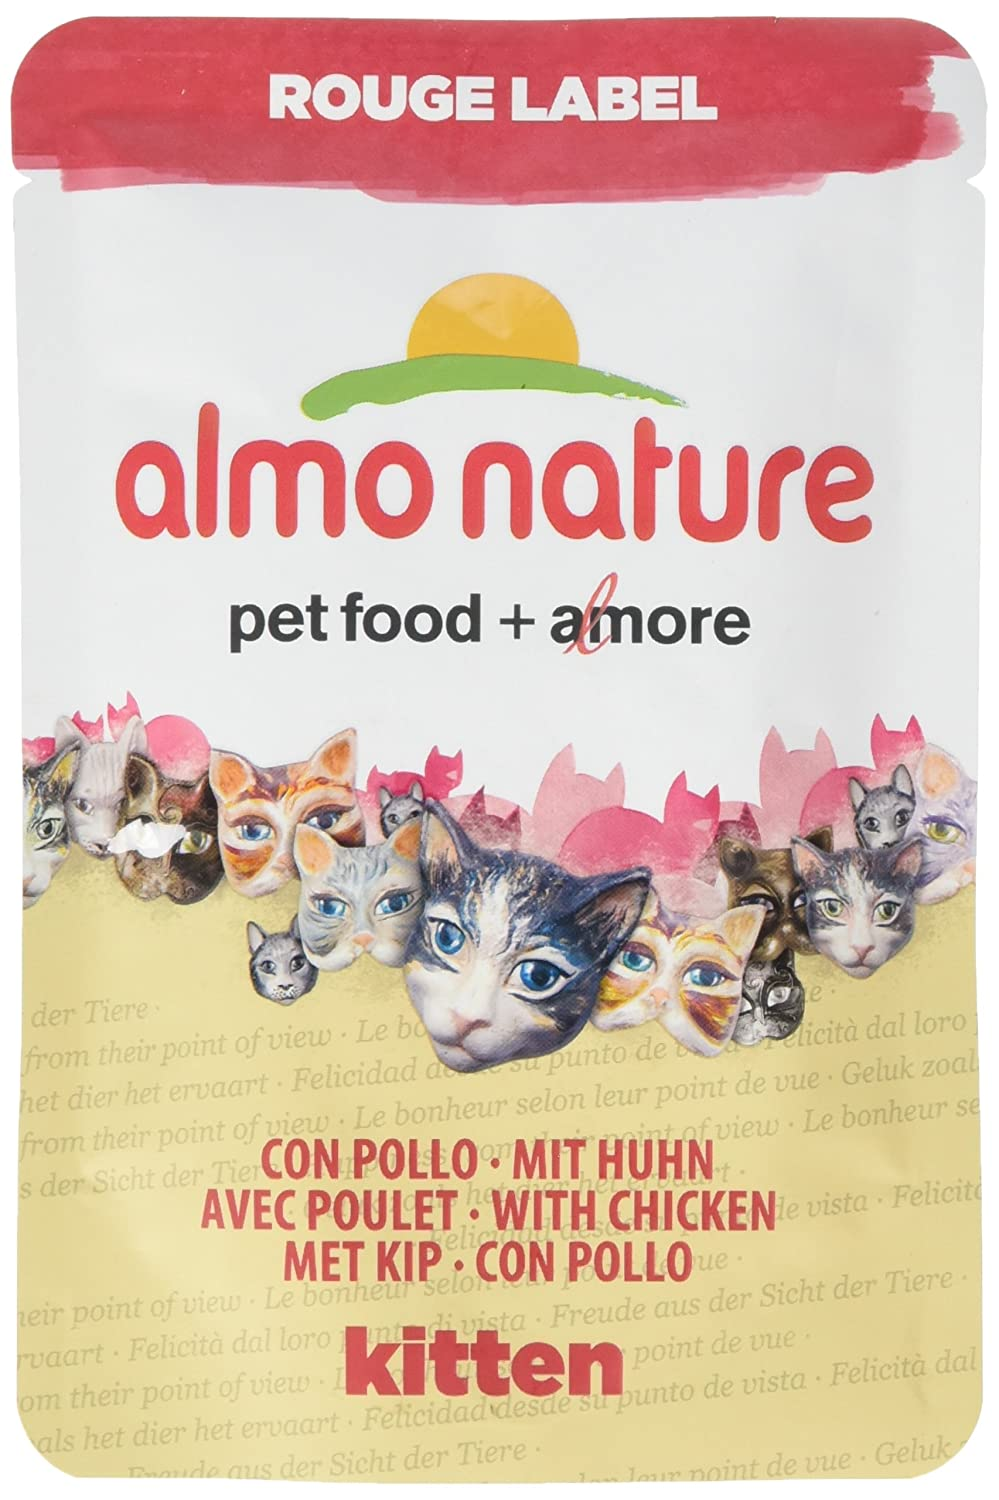 Almo Nature Rouge Label Kitten Food, Pack of 24 x 55g